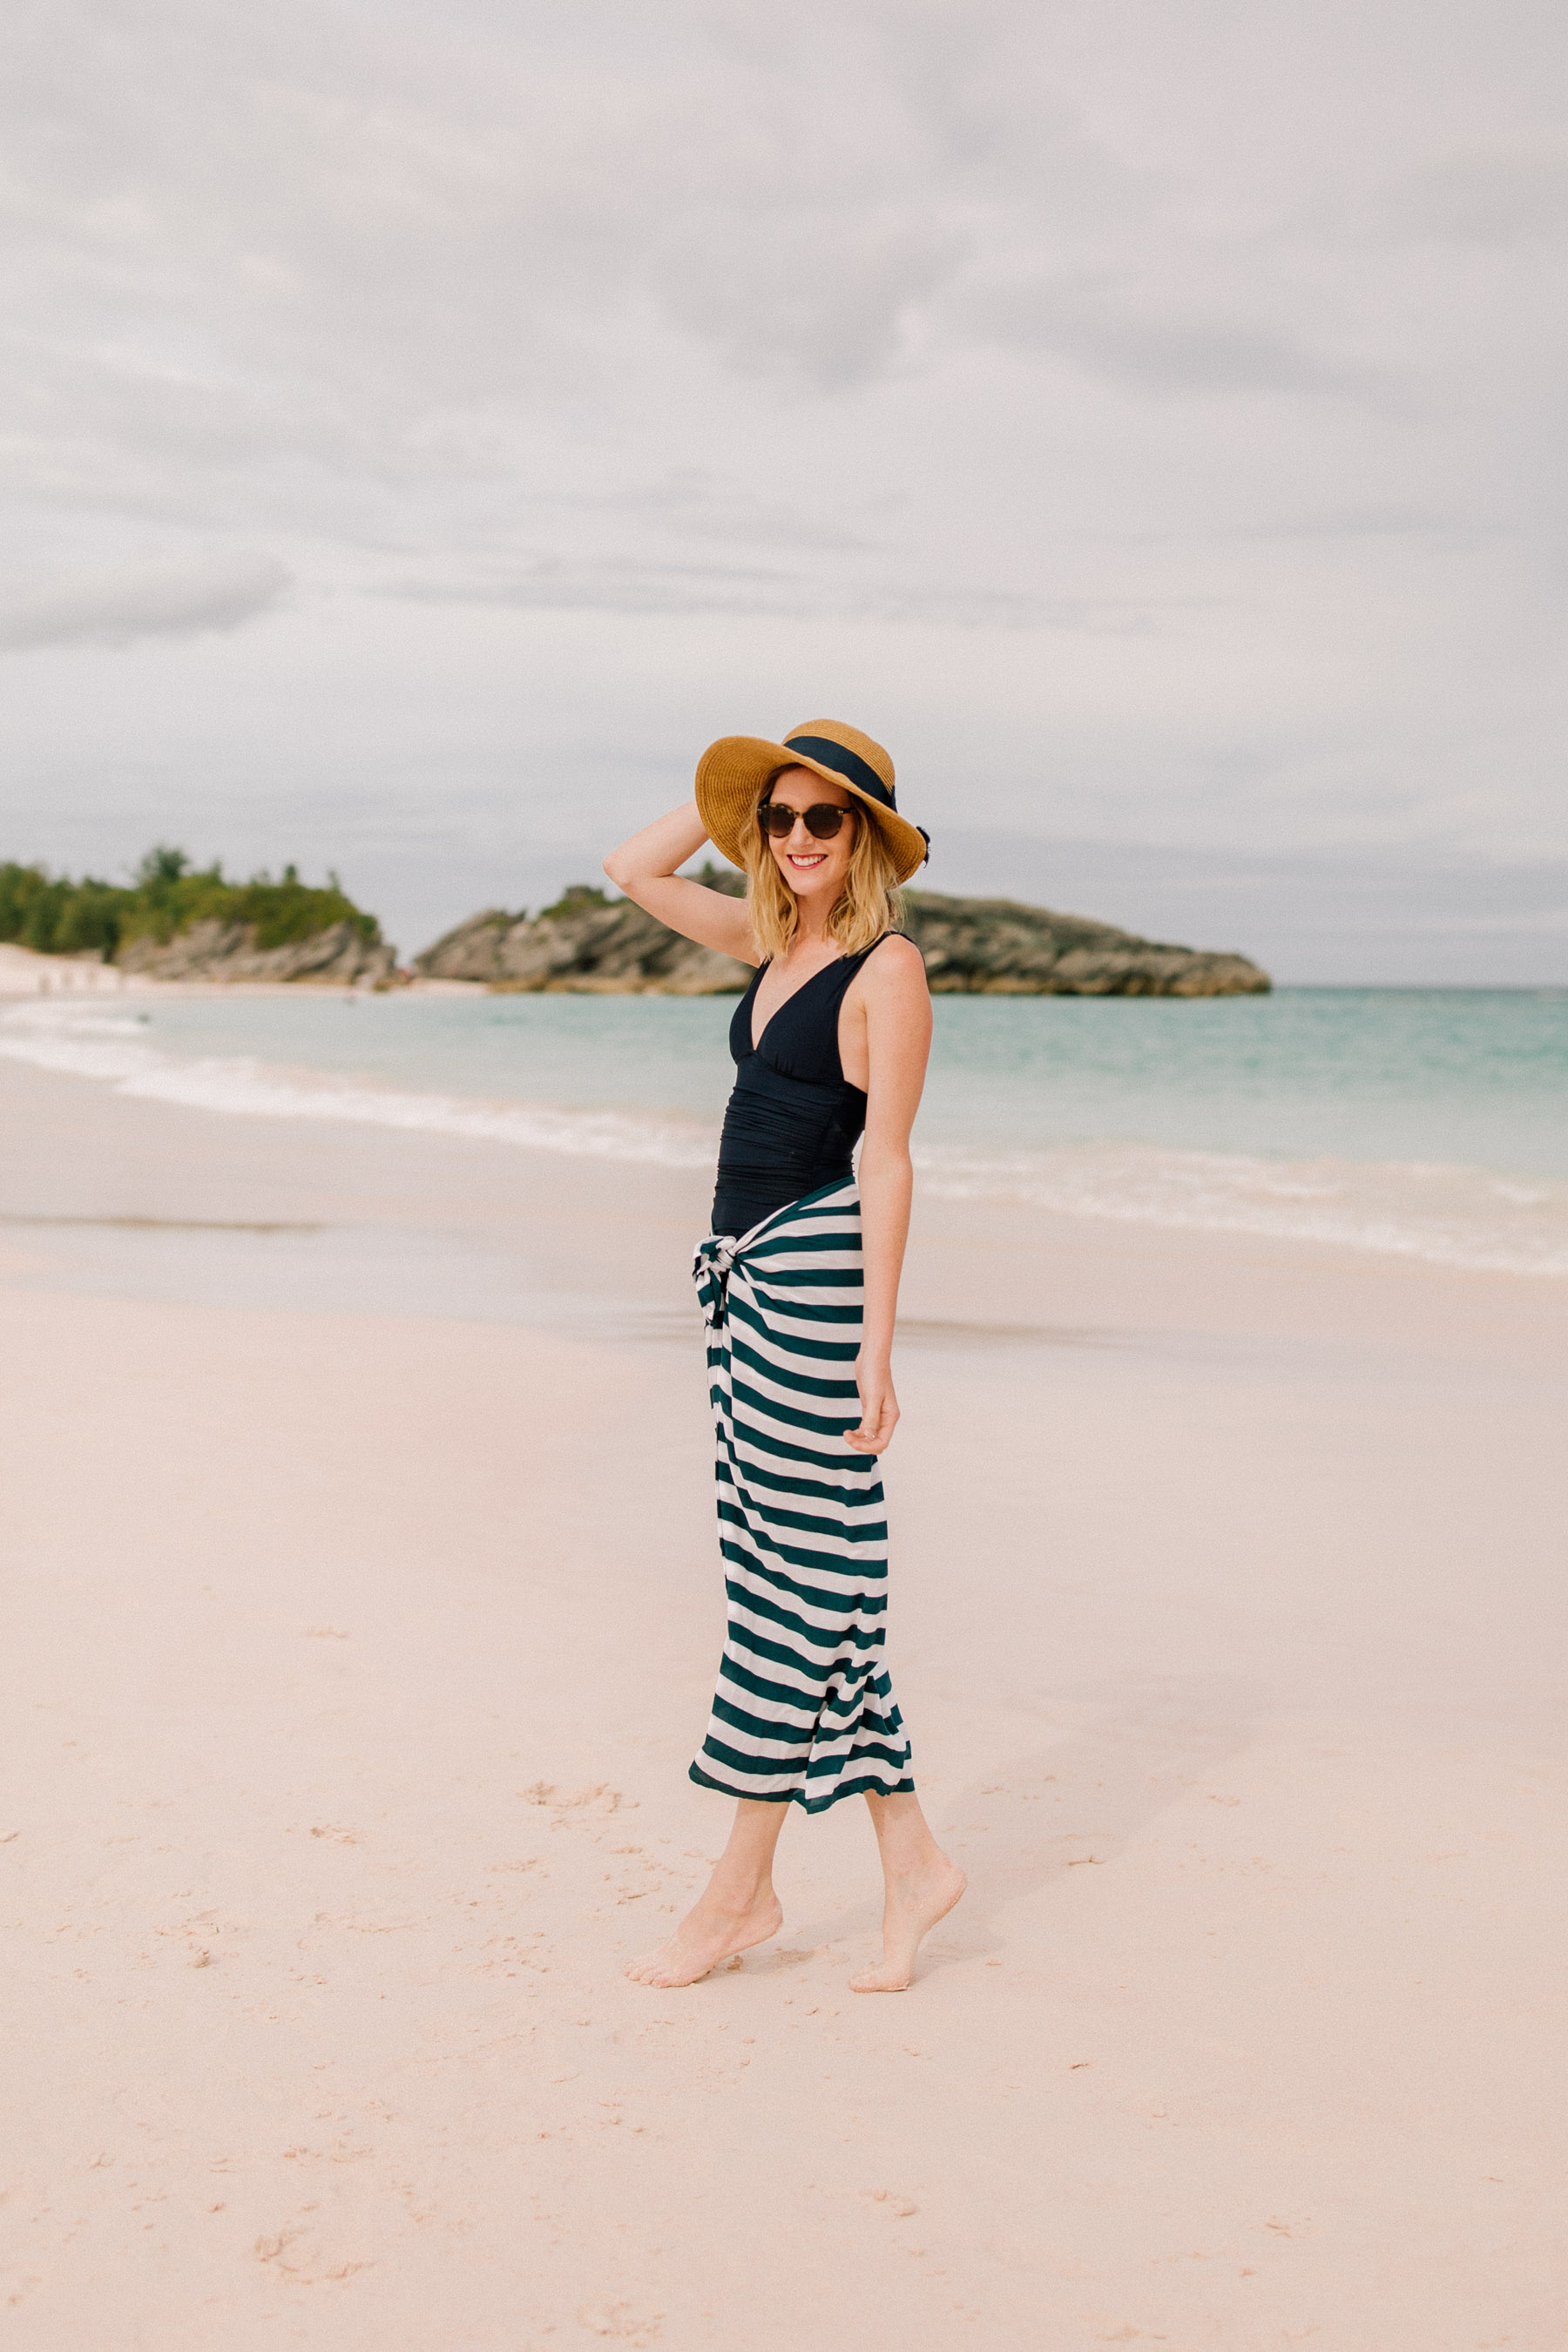 Packable Bow Hat- Tuckernuck /  Navy Striped Sarong / J.Crew Bathing Suit